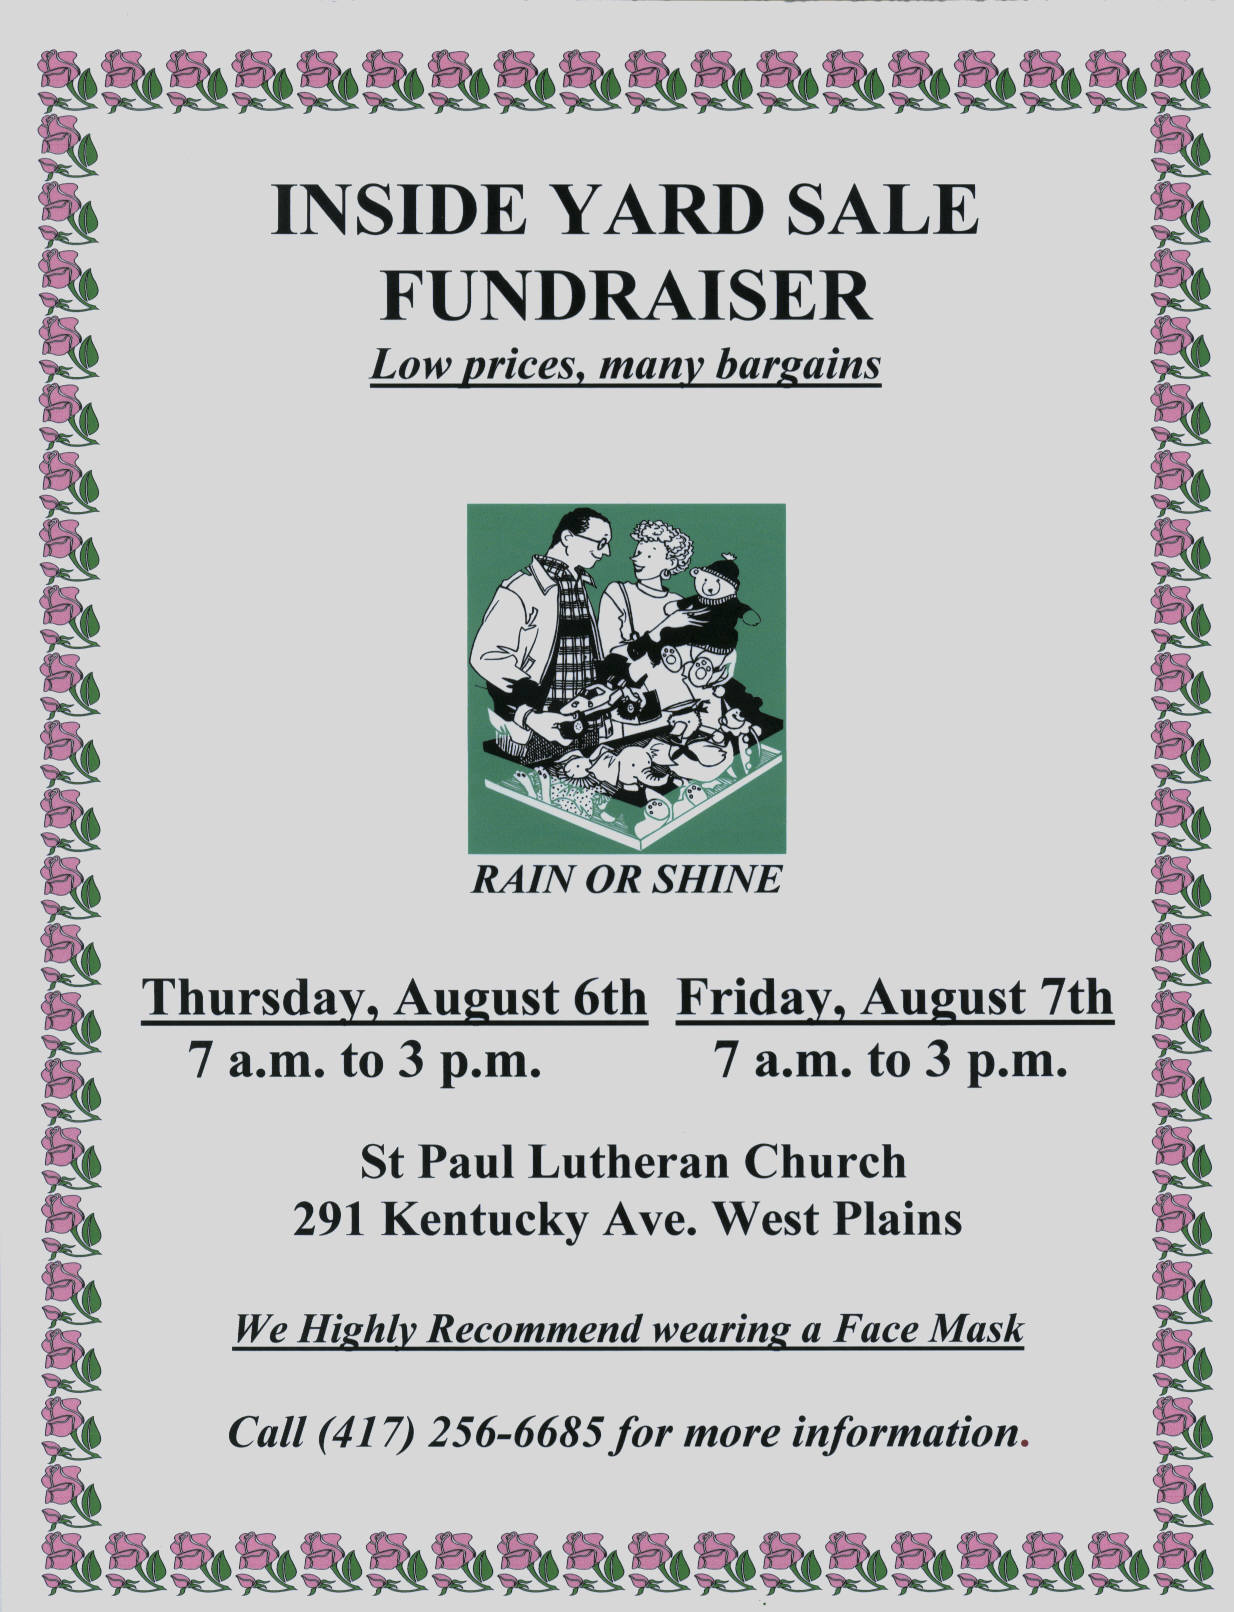 Inside Yard Sale Fundraiser @ St Paul Lutheran Church